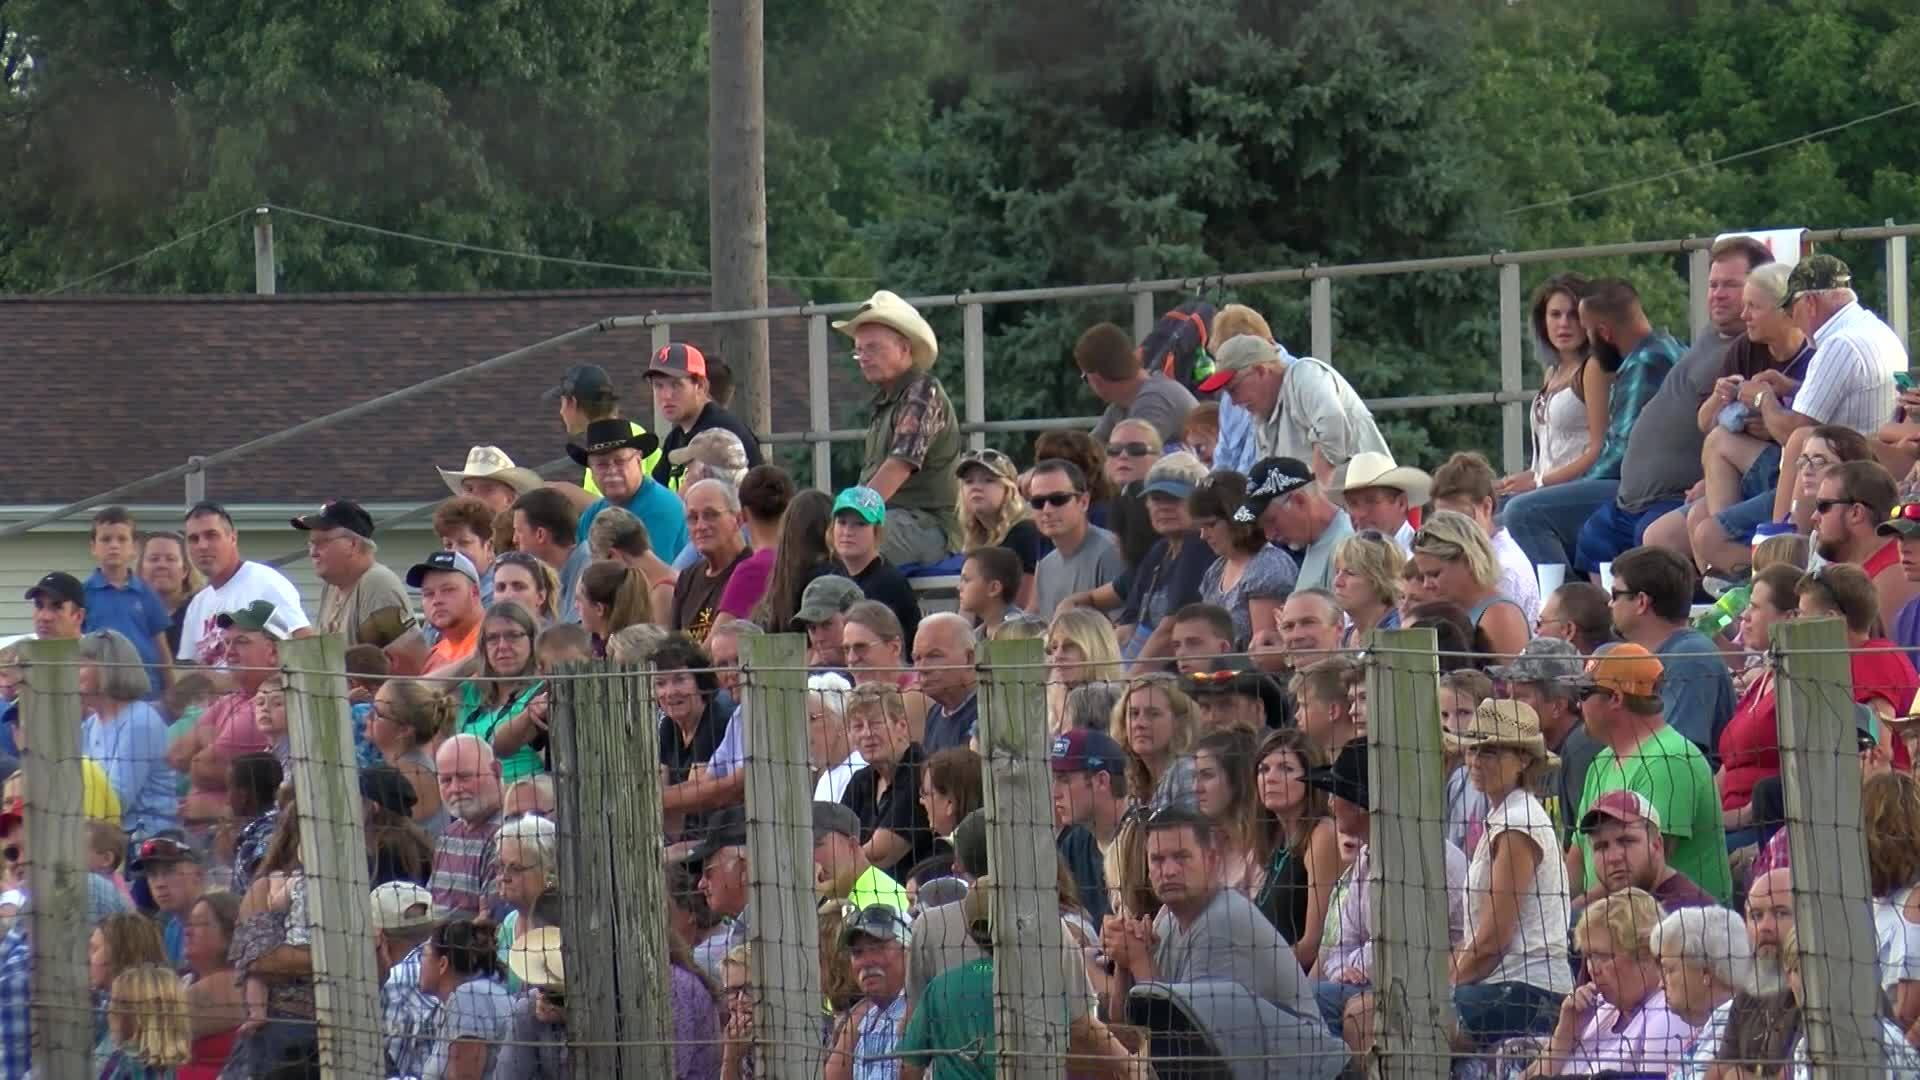 Parade kicks off 79th annual New Windsor Rodeo